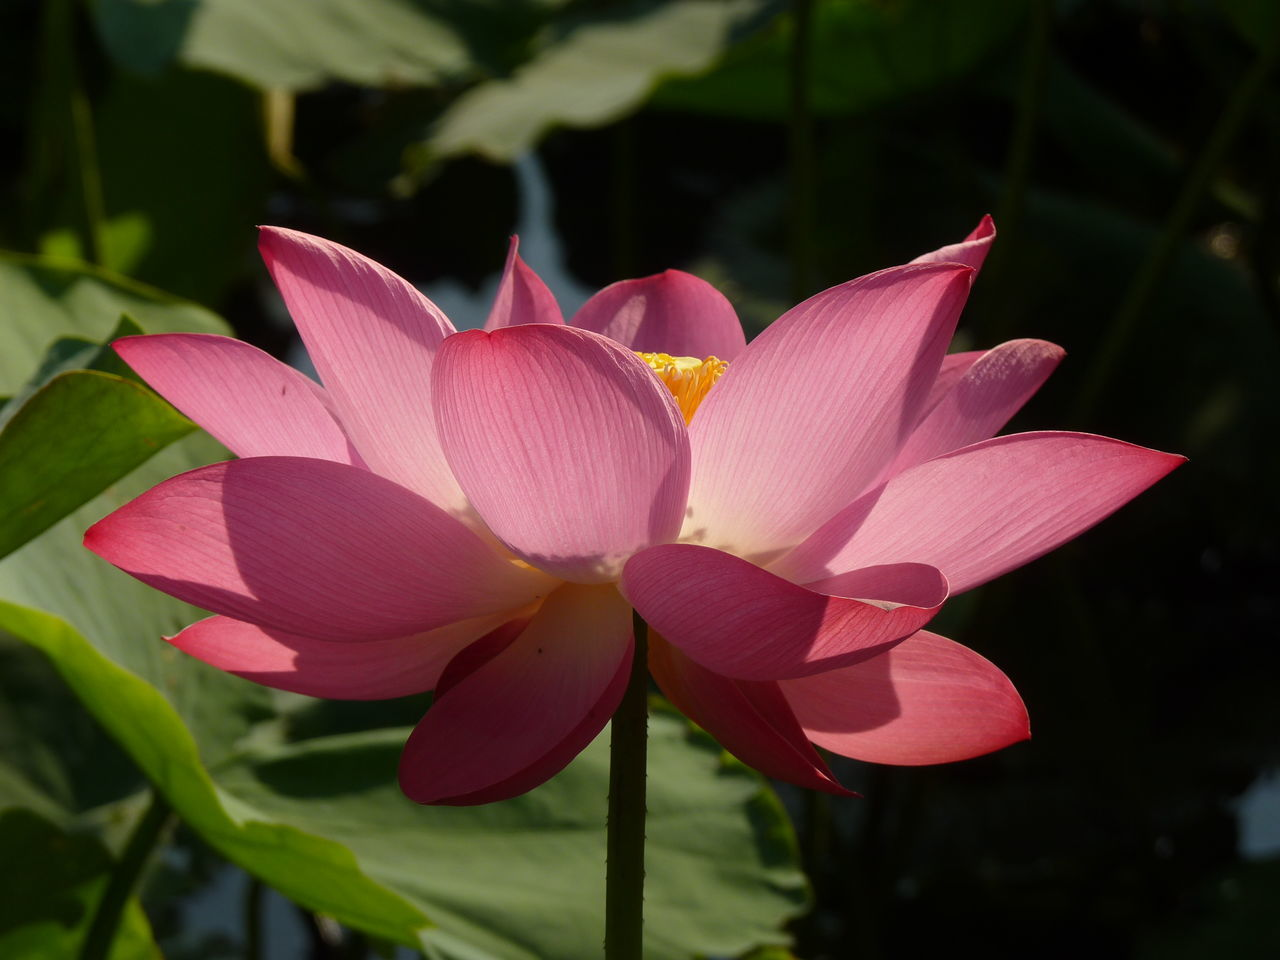 petal, flower, beauty in nature, growth, fragility, nature, flower head, pink color, freshness, plant, blooming, close-up, no people, day, leaf, outdoors, lotus water lily